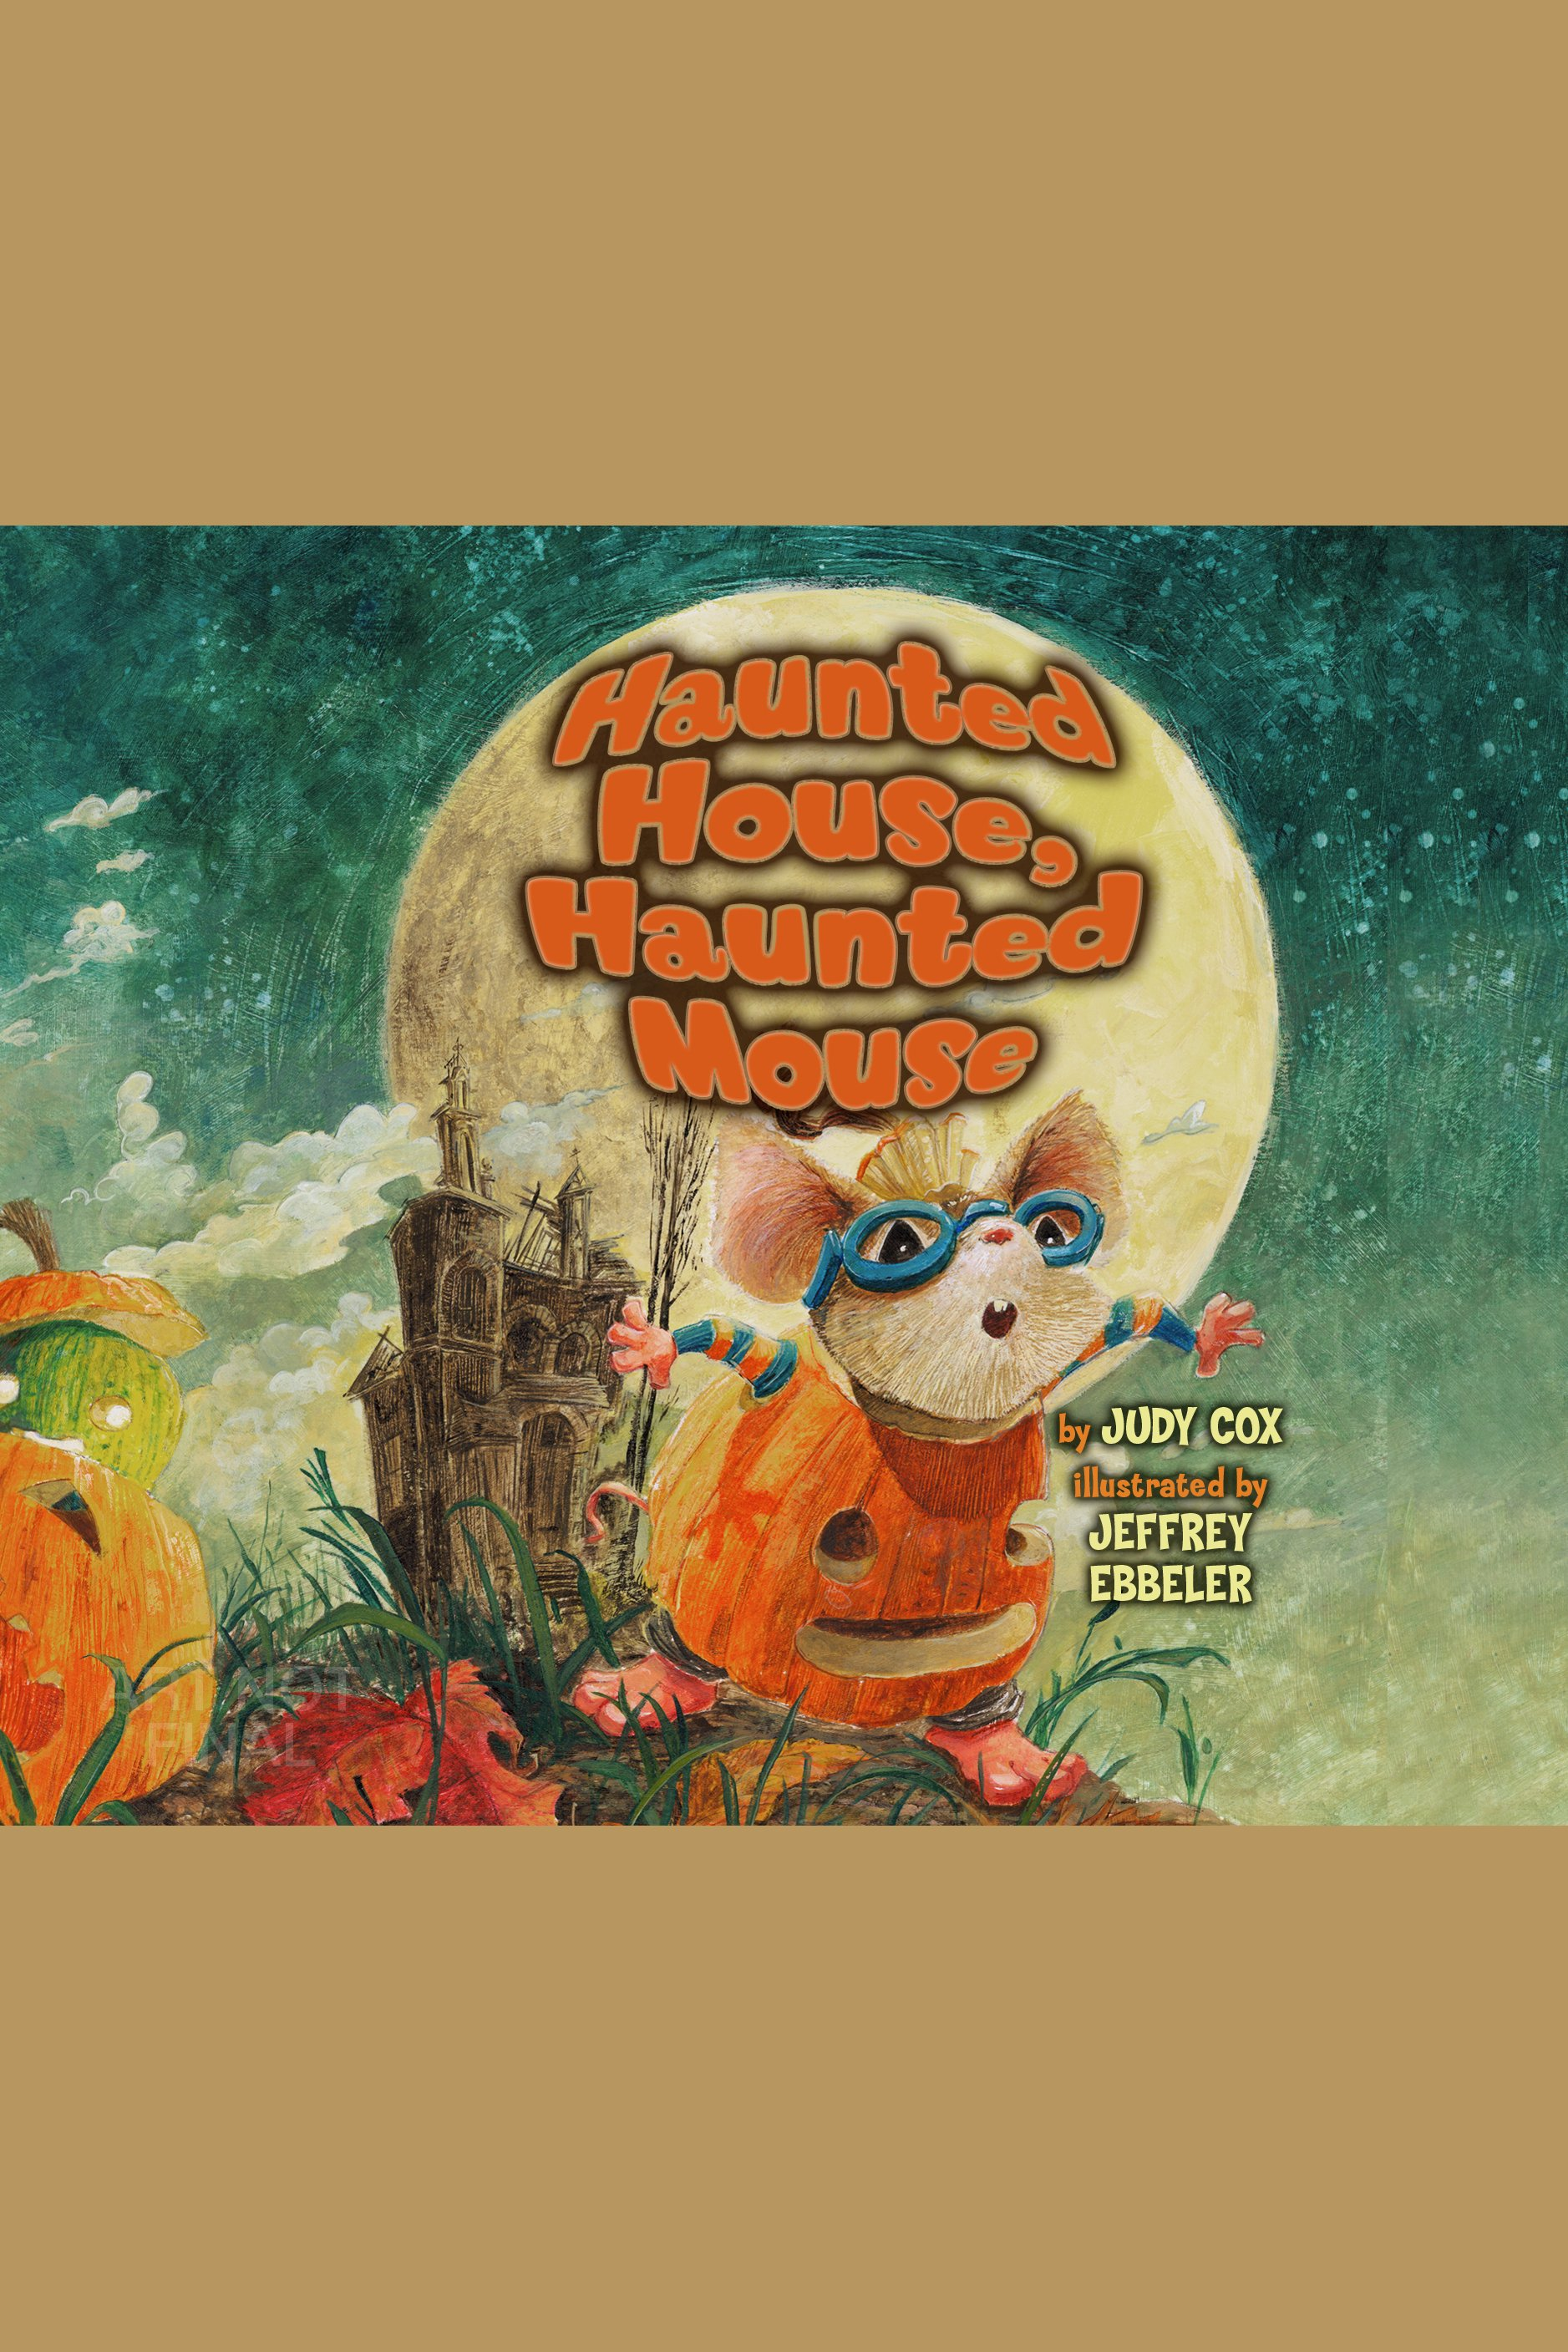 Haunted house, haunted mouse cover image